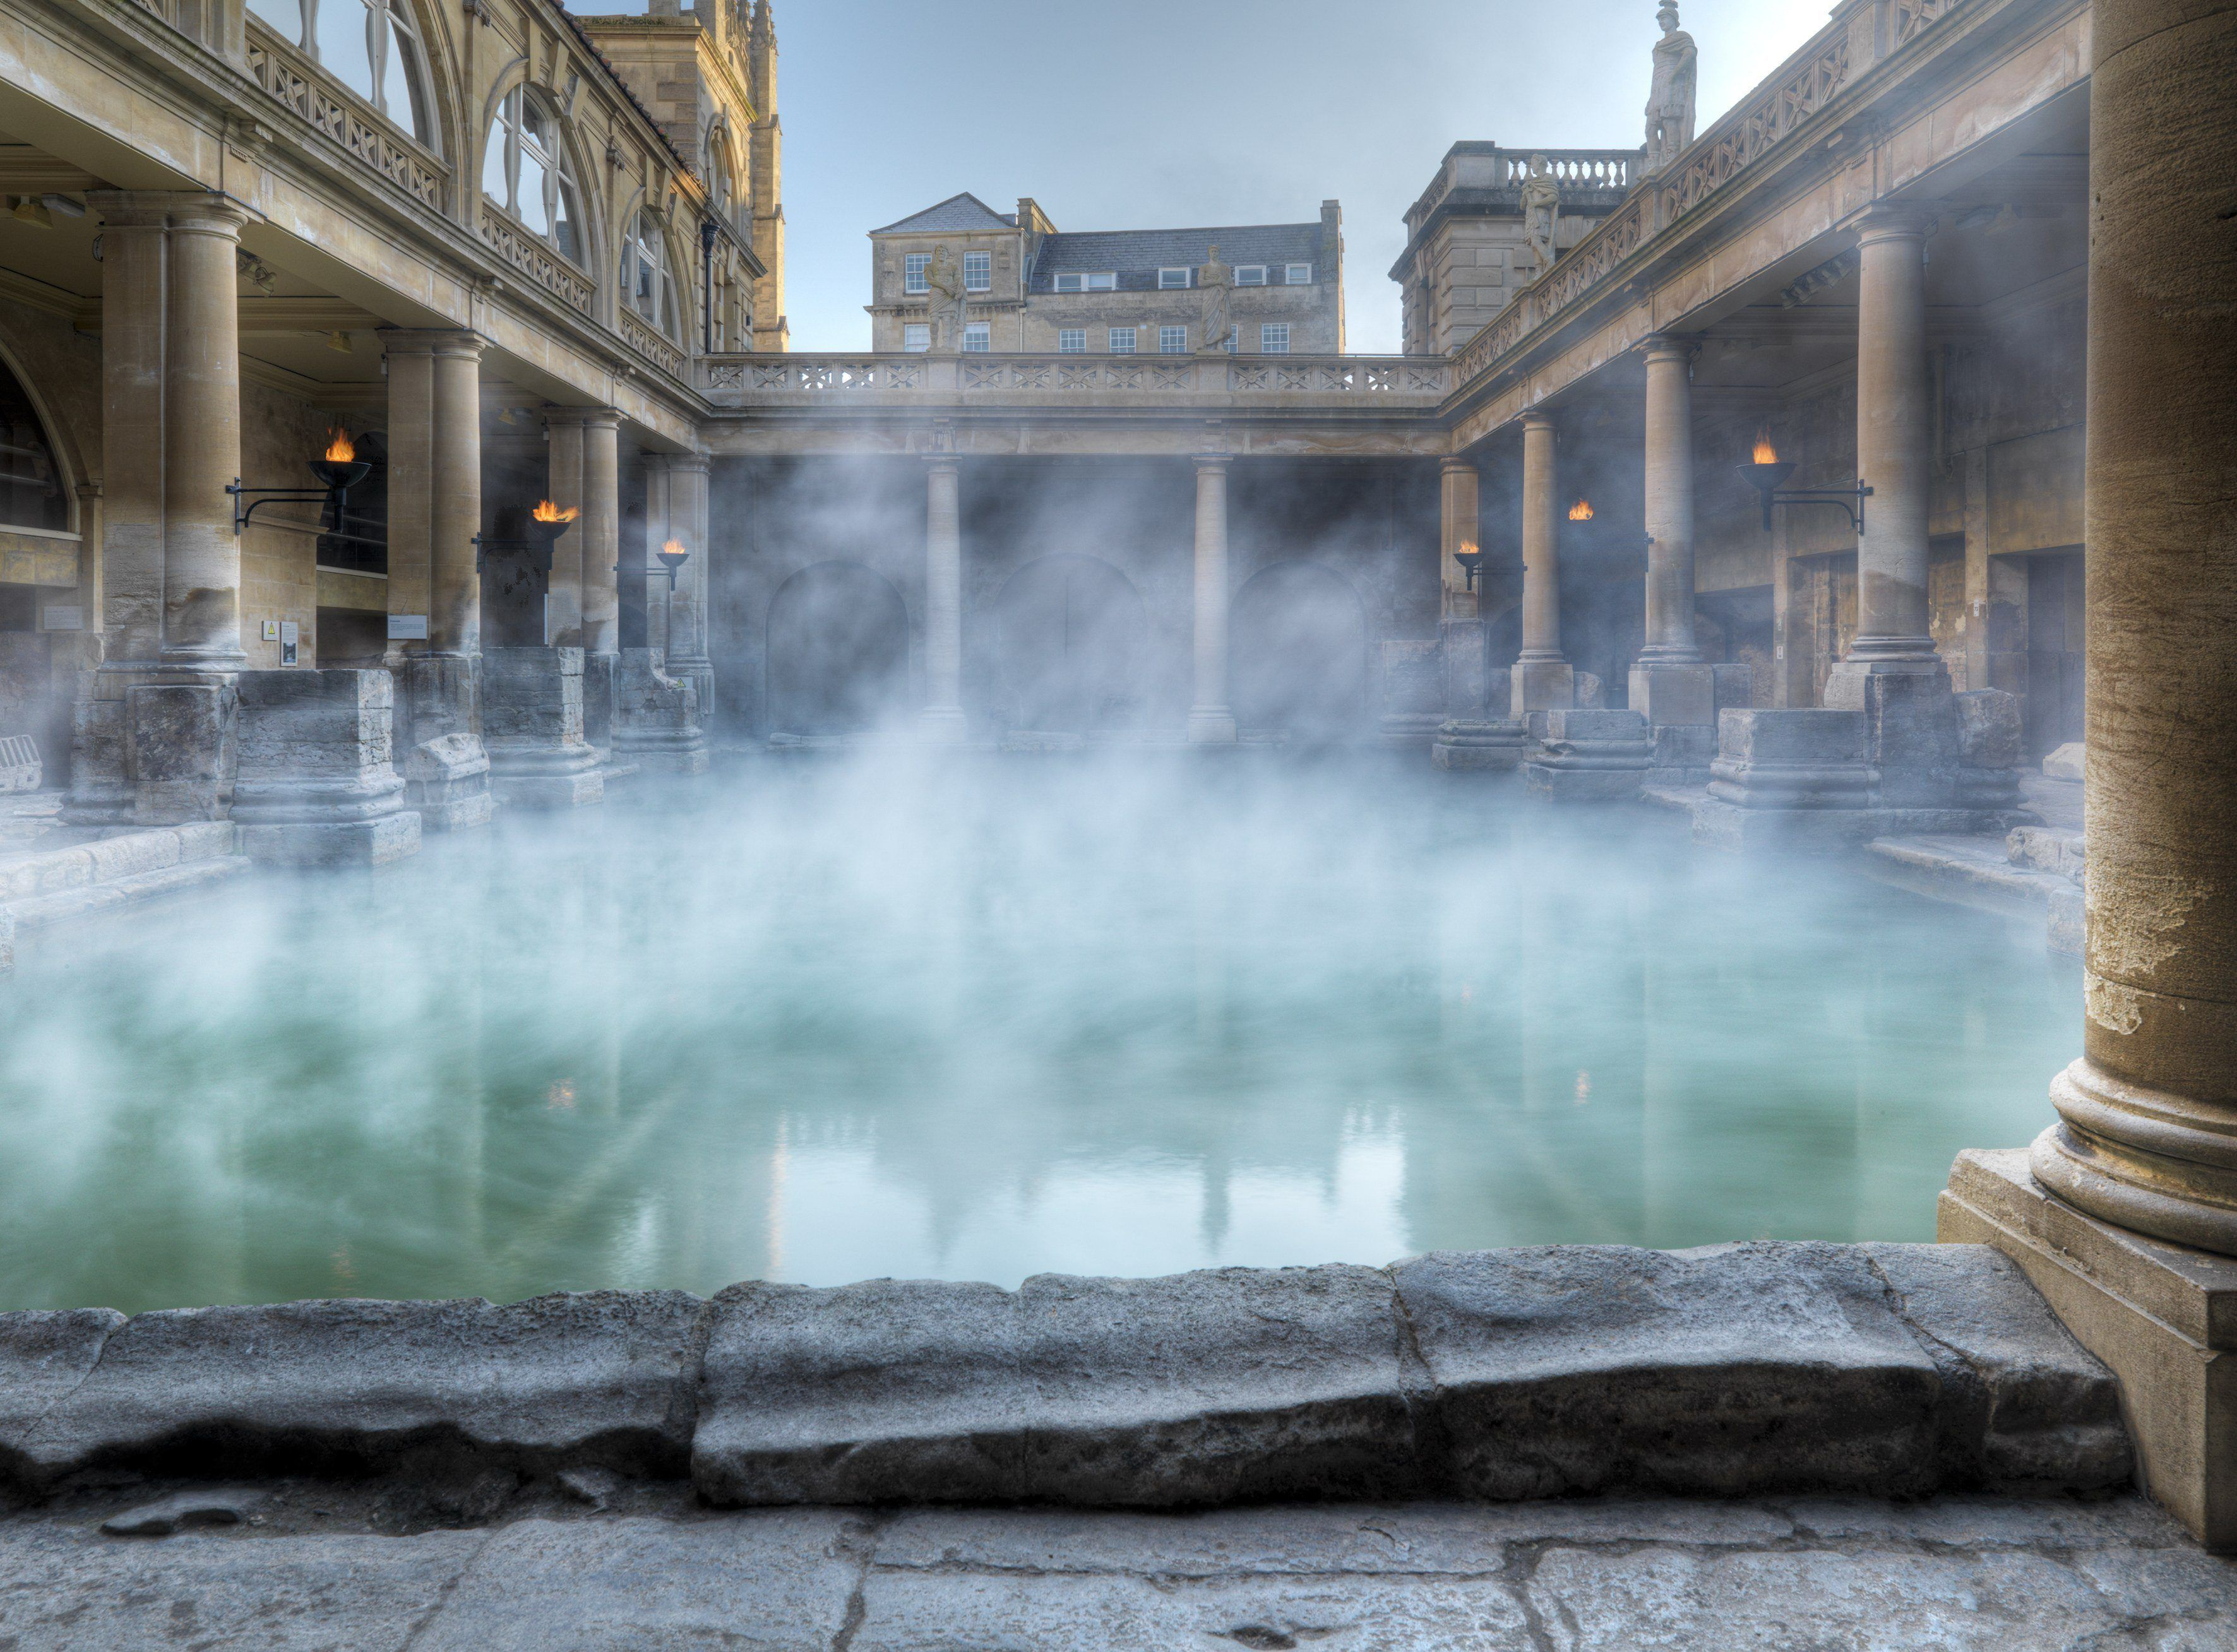 Hire The Roman Baths And Pump Room For Private Events